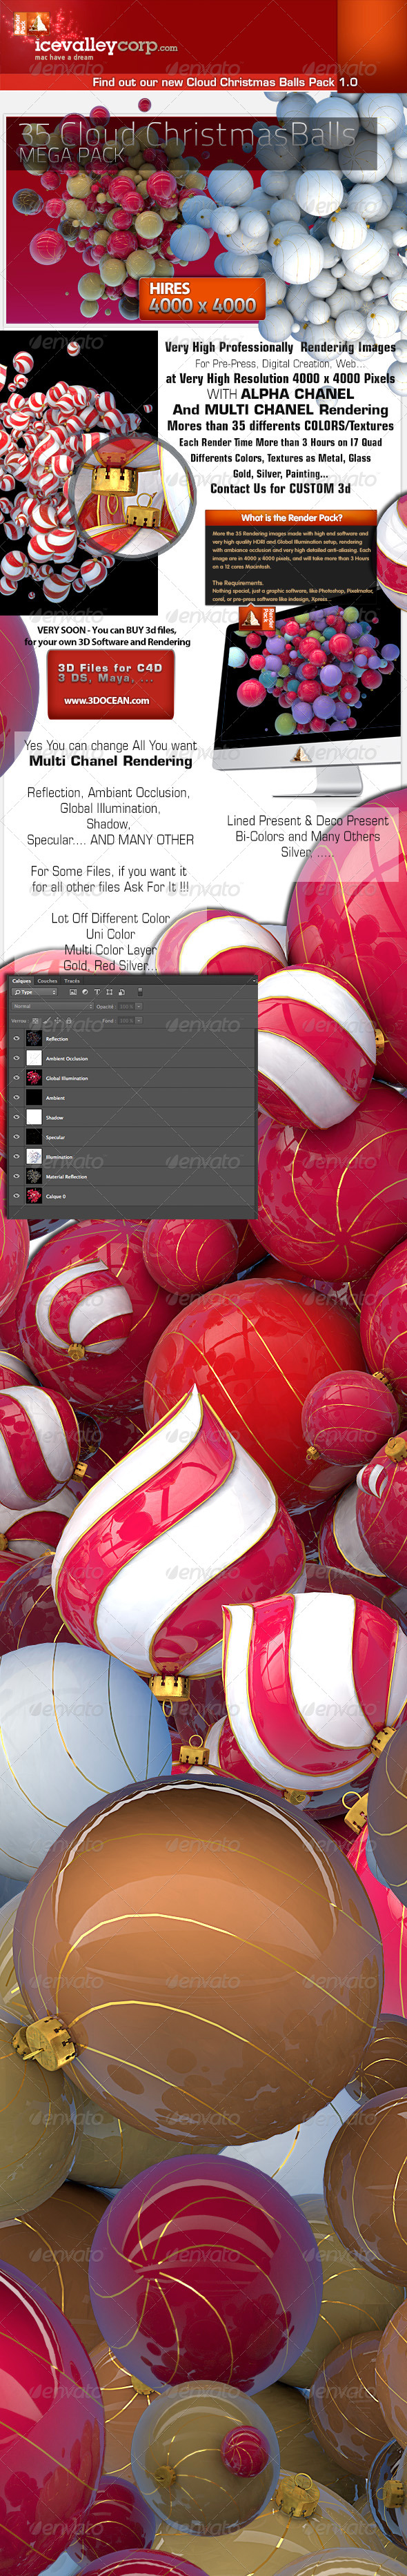 35 Incredible Christmas Cloud With Balls in HIRES - Objects 3D Renders